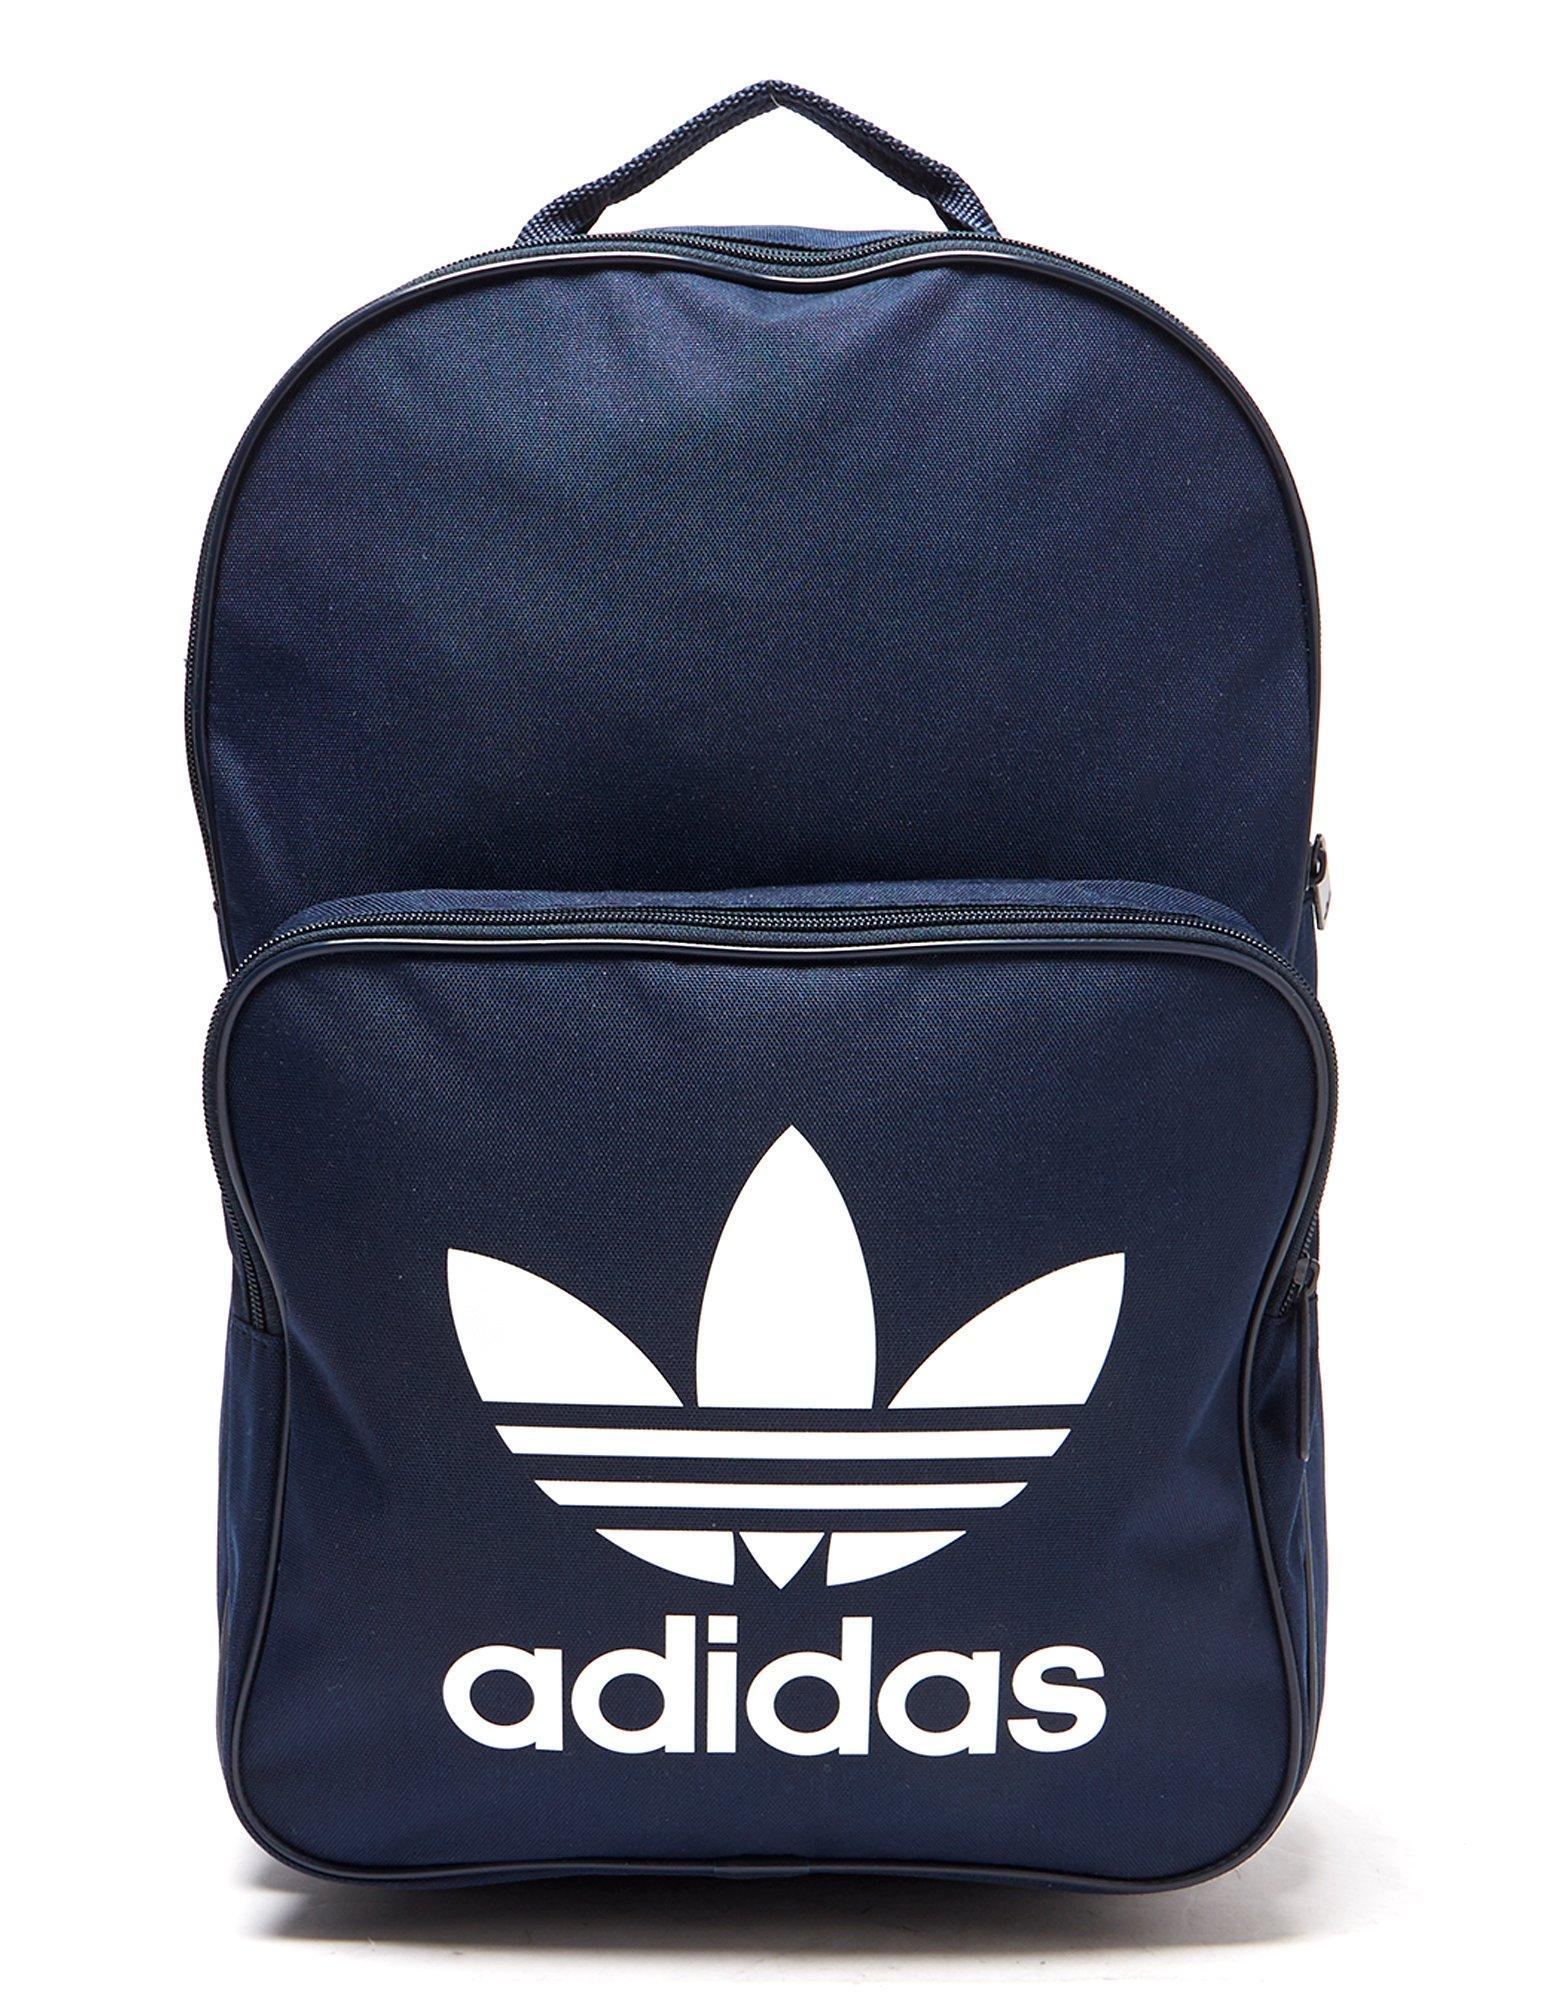 3b6e63fbf4 Lyst - adidas Originals Classic Backpack in Blue for Men